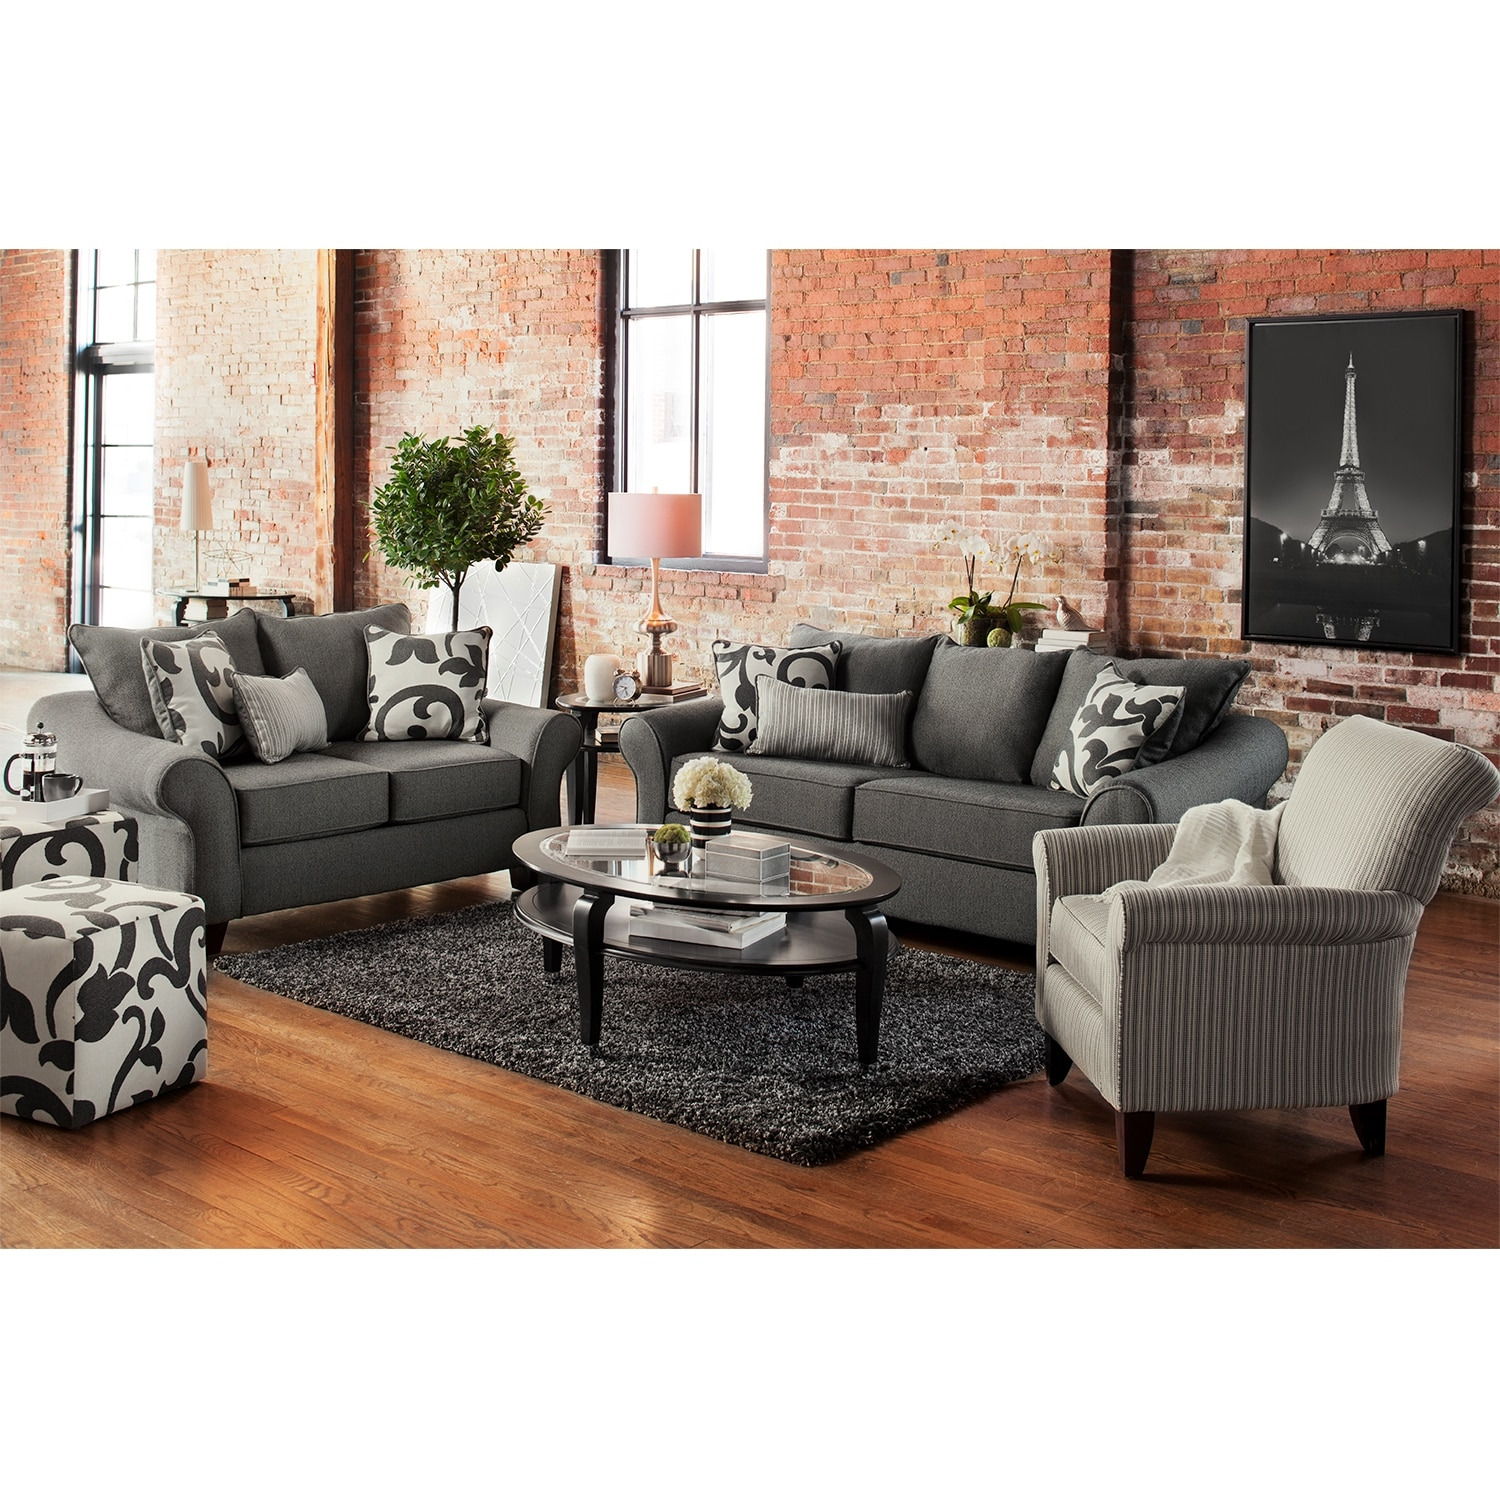 Colette sofa loveseat and accent chair set gray for I living furniture